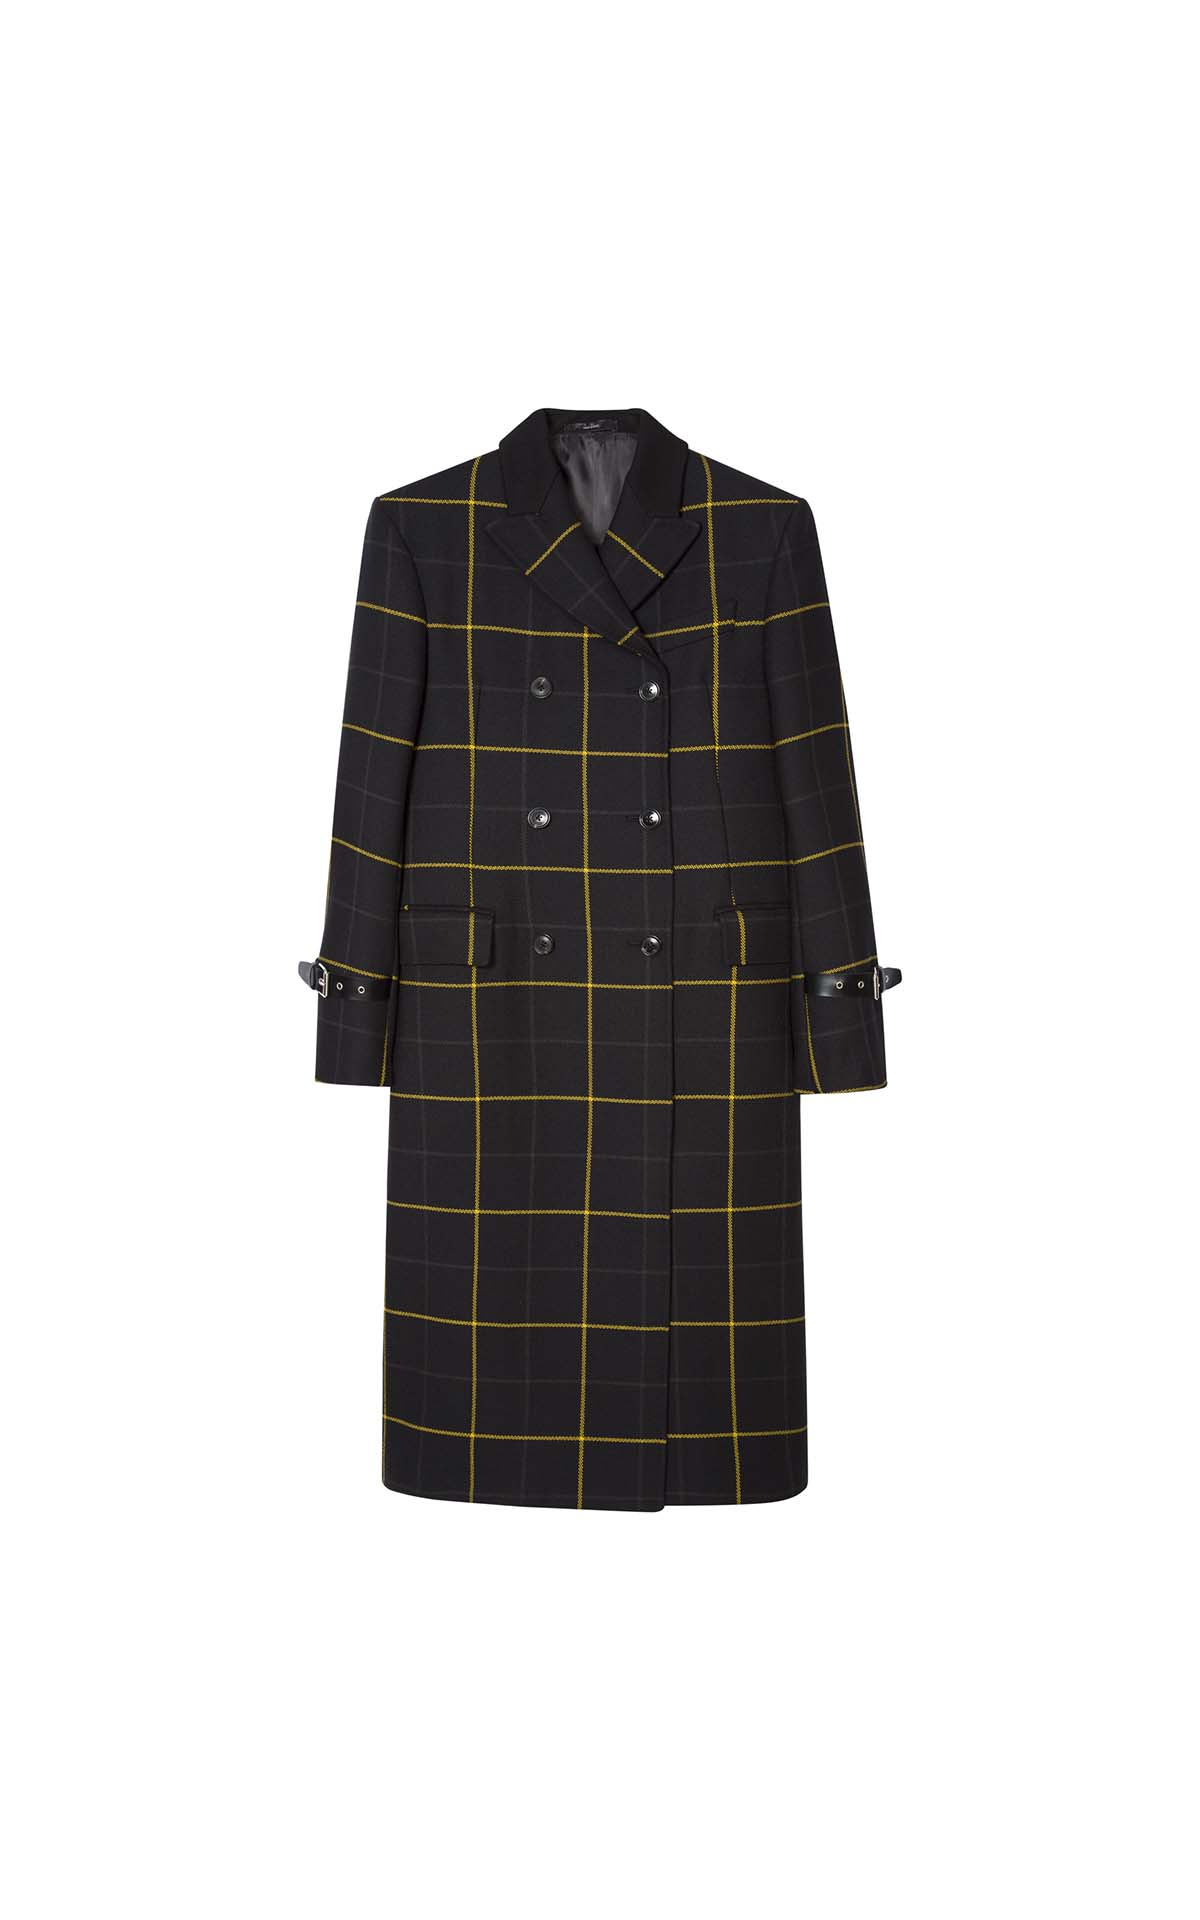 Paul Smith Women's check coat at The Bicester Village Shopping Collection